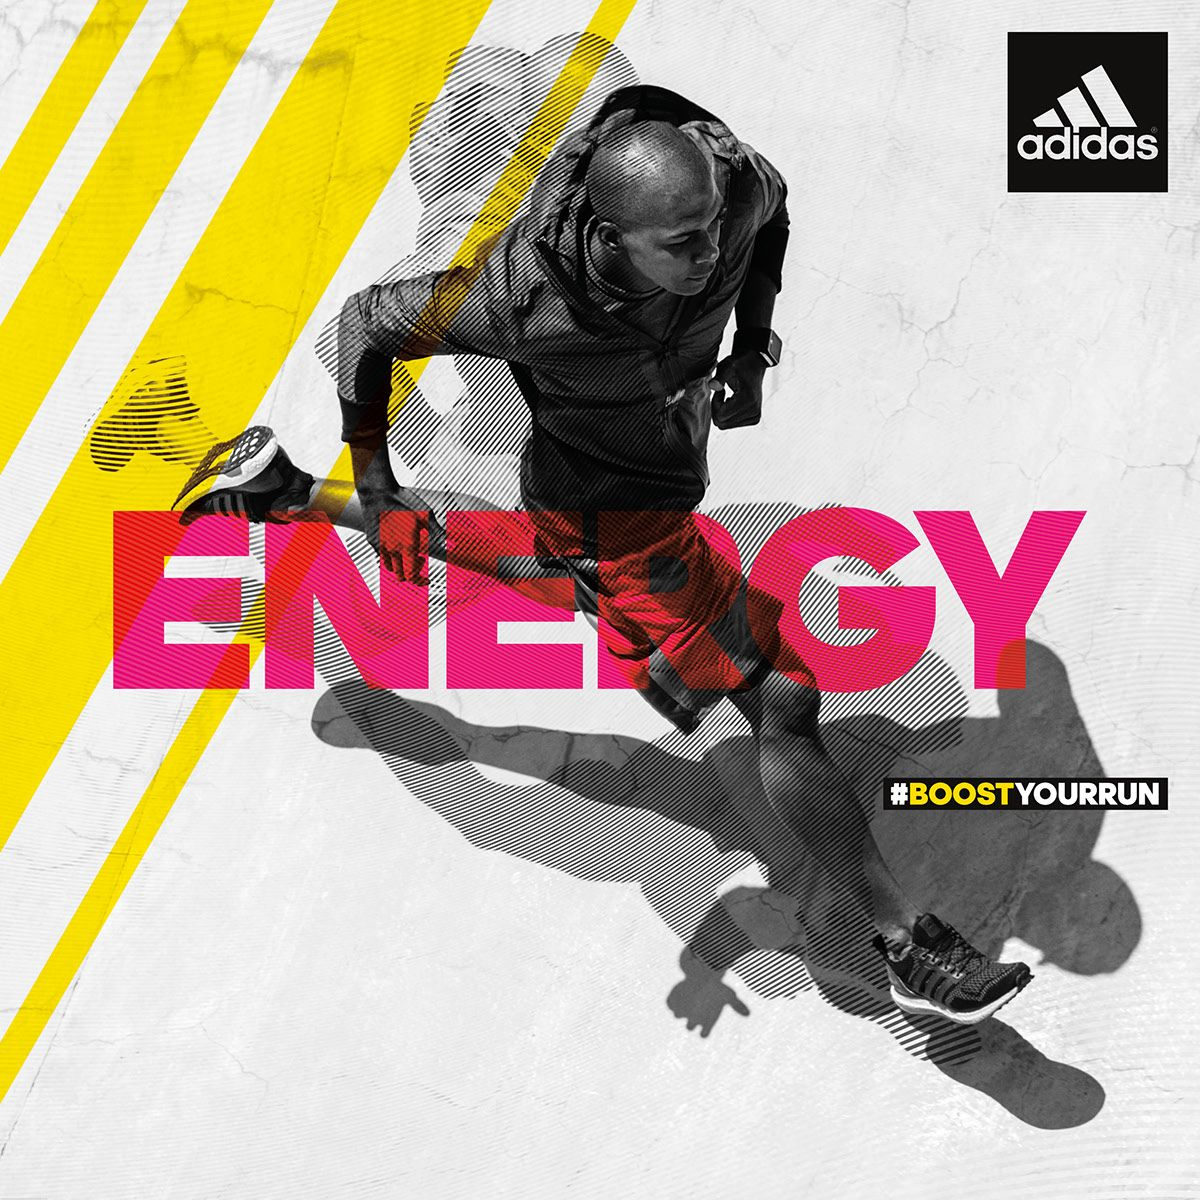 Adidas Originals SS16 Global Campaign on Behance